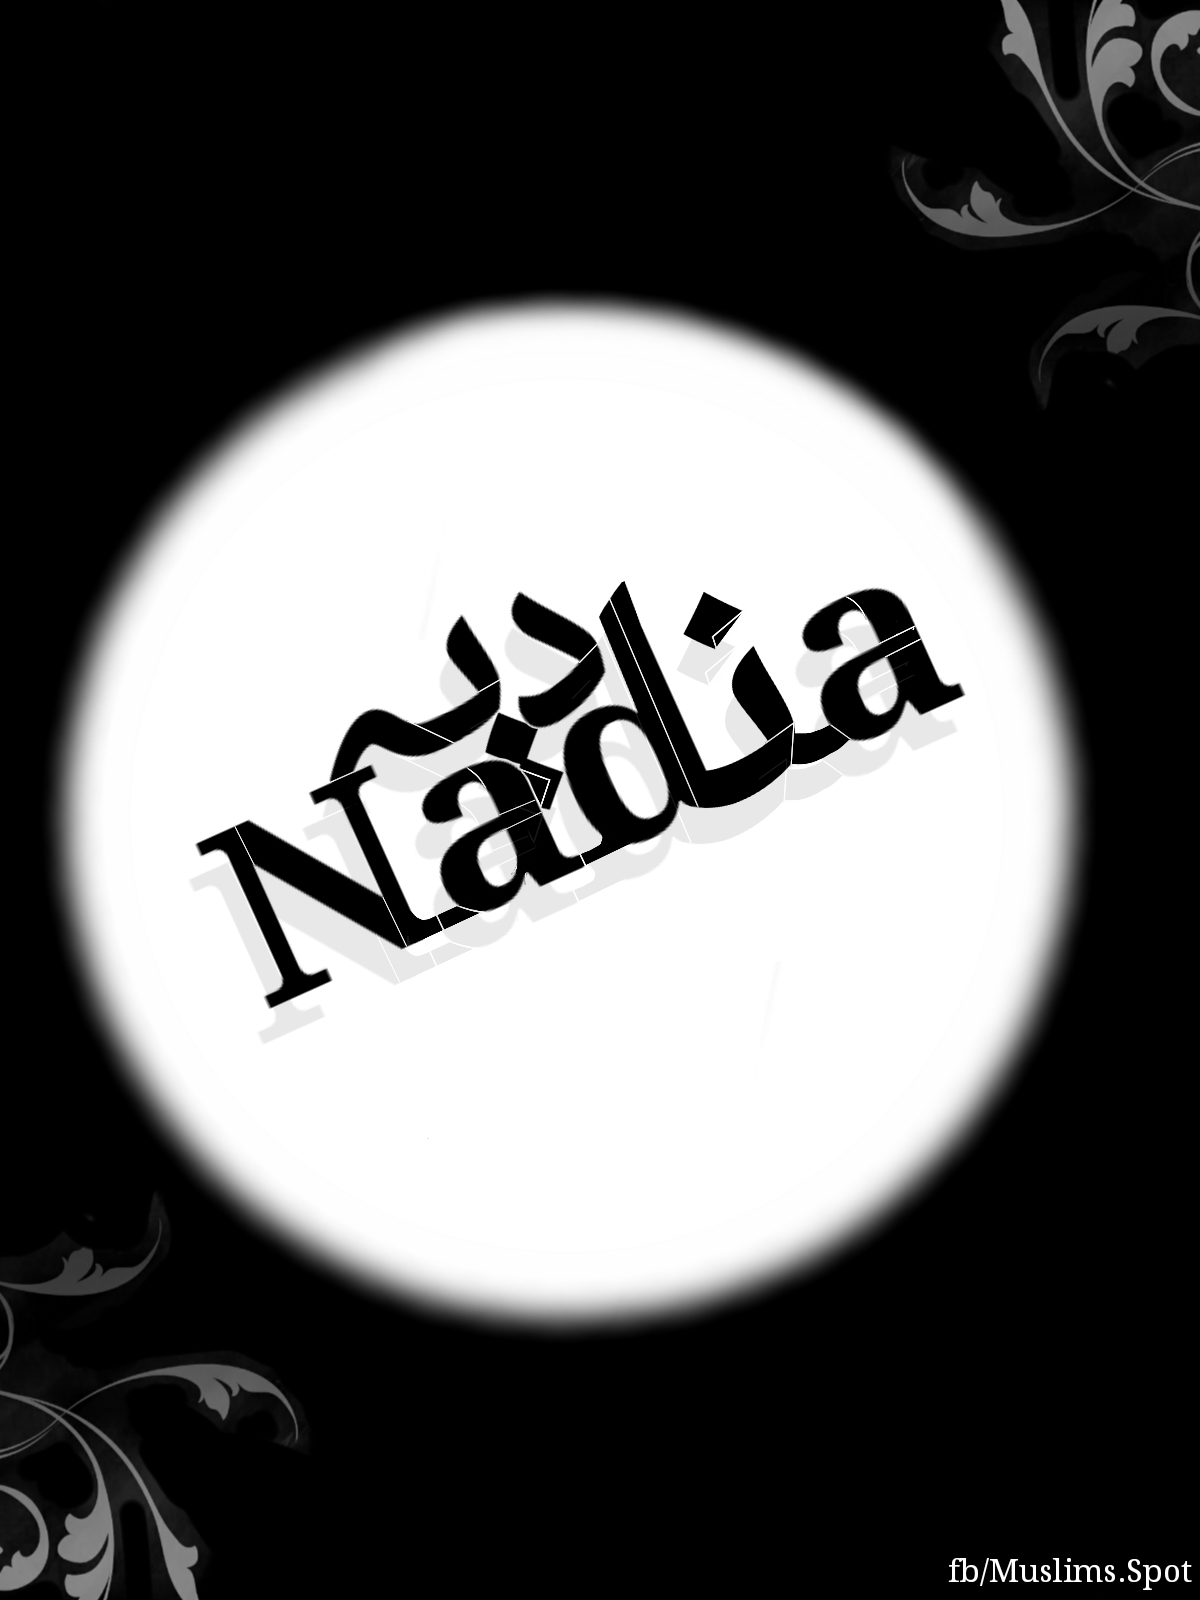 Amazing Wallpaper Name English - nadia_arabic_english_fusion_by_net_spidy-d8lt2vg  You Should Have_698488.jpg